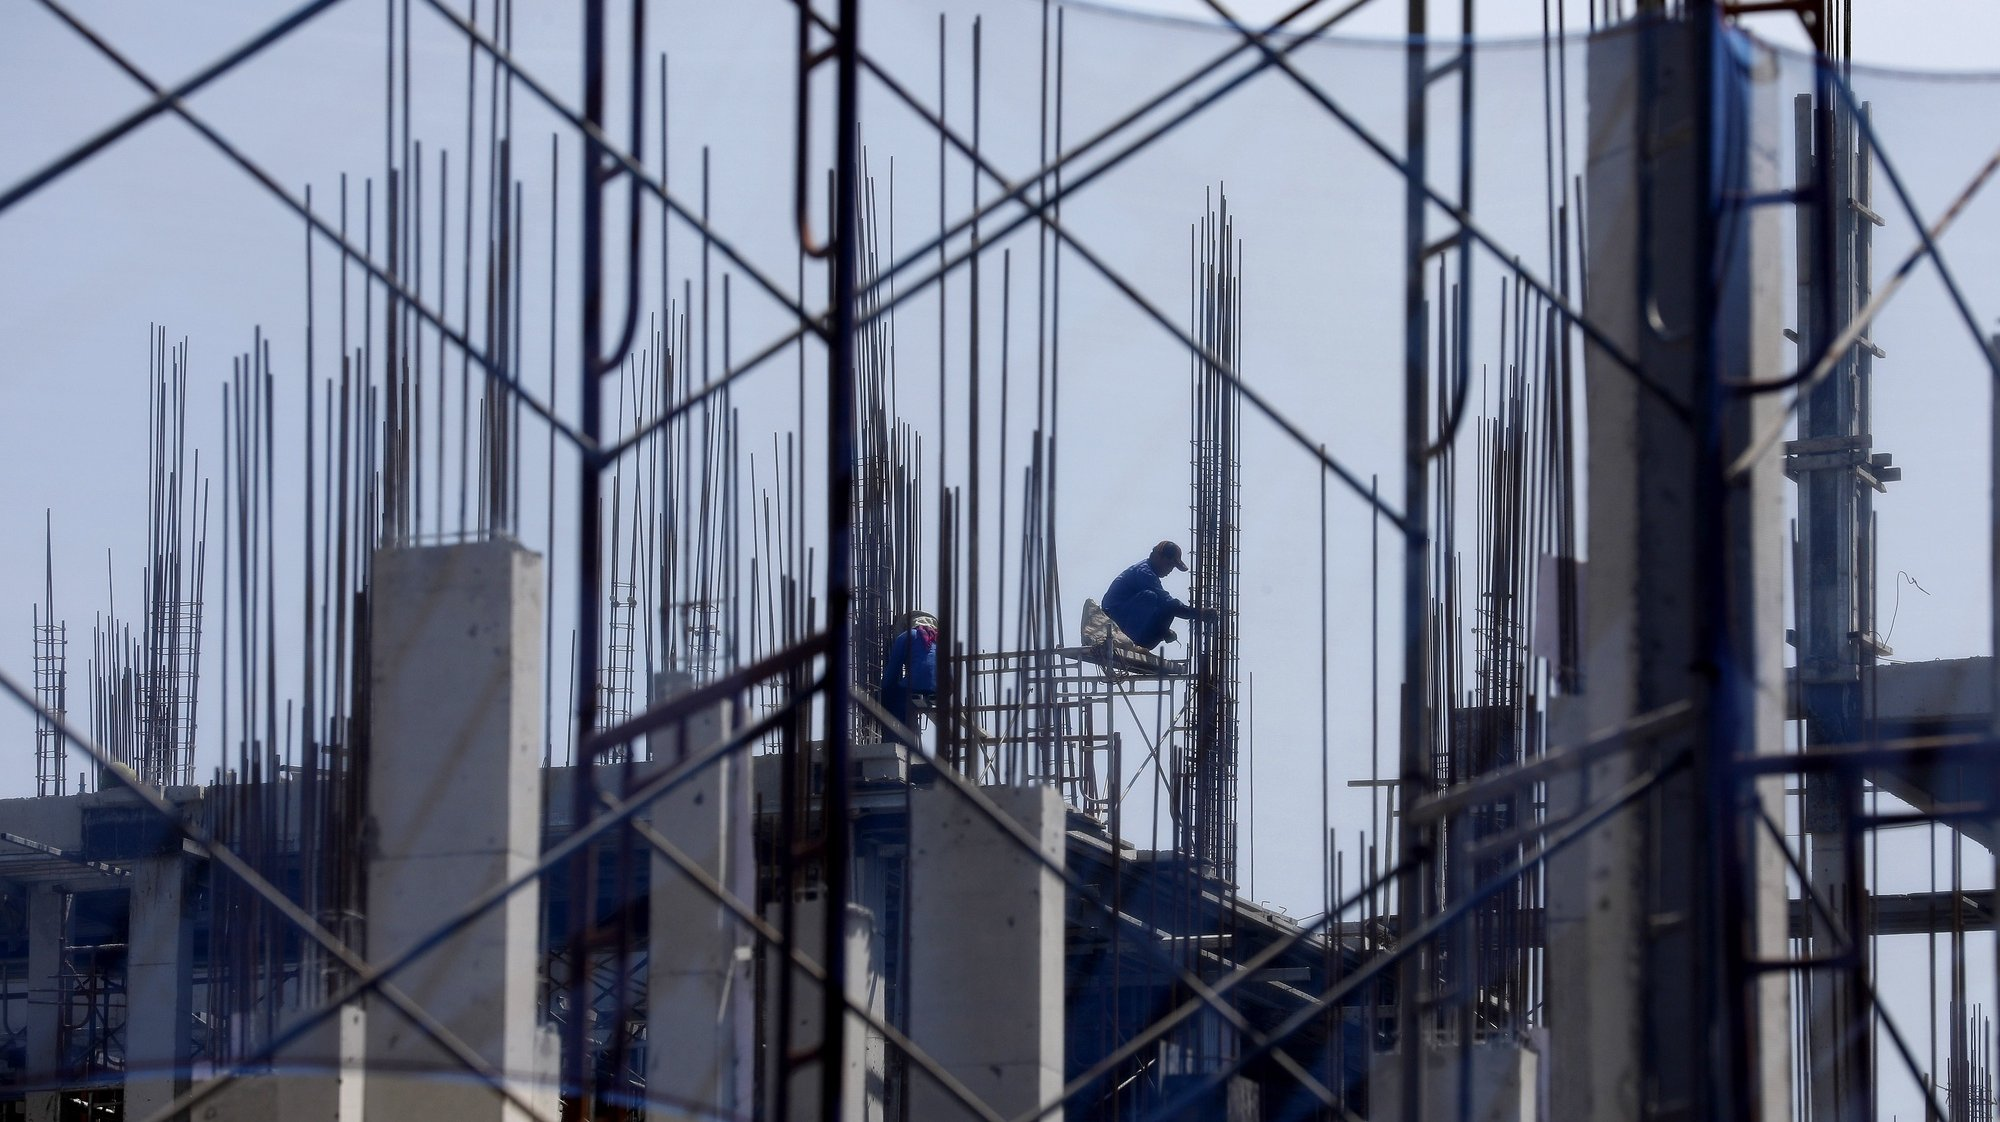 epa08534649 A laborer works at a construction site in Hanoi, Vietnam, 08 July 2020. Vietnam's GDP growth grew by 1.8 percent in the first half of 2020 due to the pandemic of the COVID-19 disease caused by the SARS-CoV-2 coronavirus, according to General Statistics Office (GSO).  EPA/LUONG THAI LINH